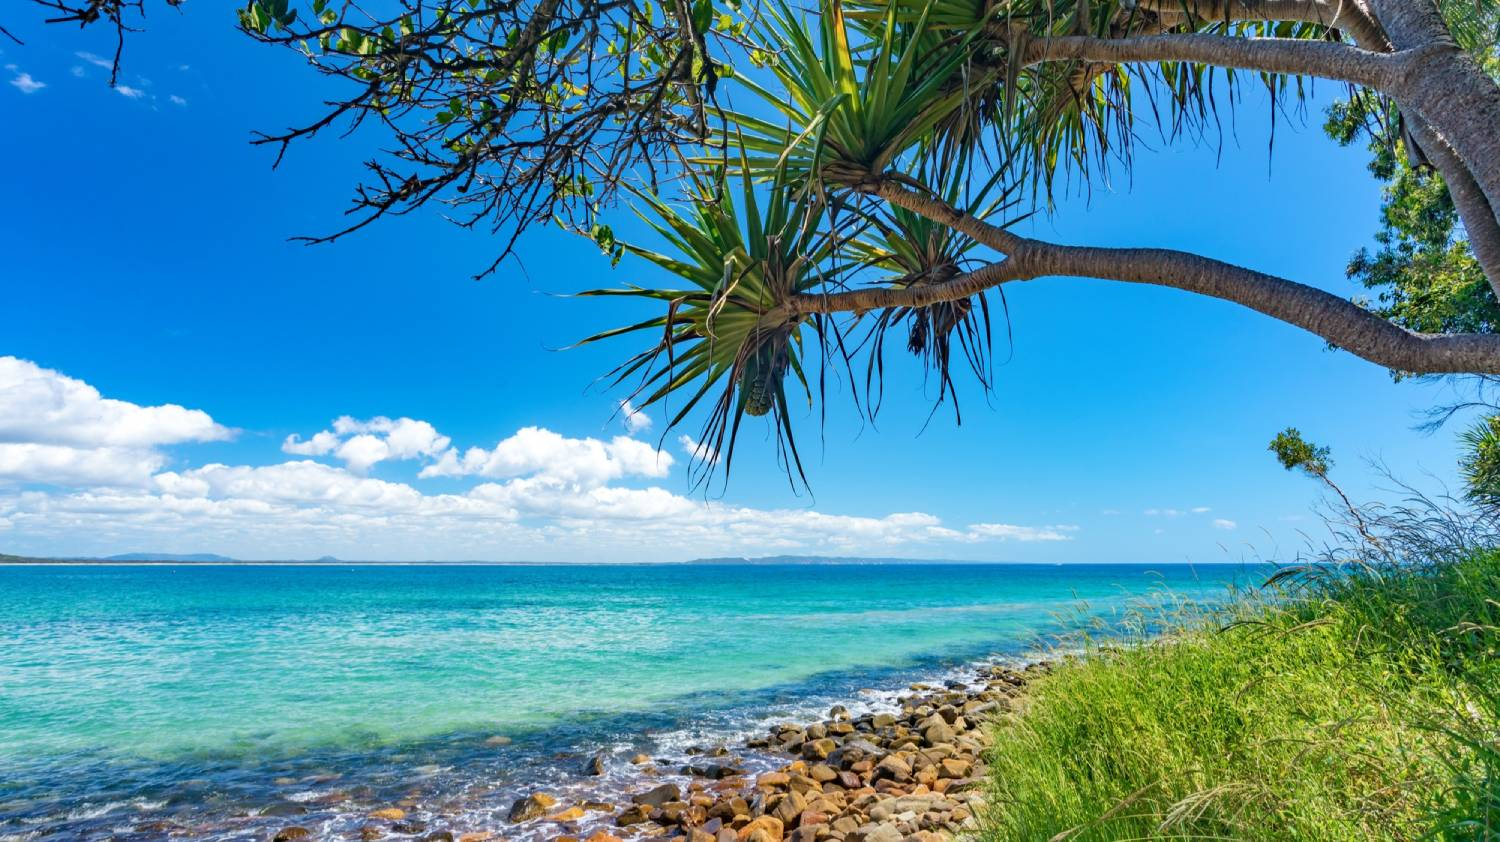 Noosa National Park - Things To Do On The Sunshine Coast